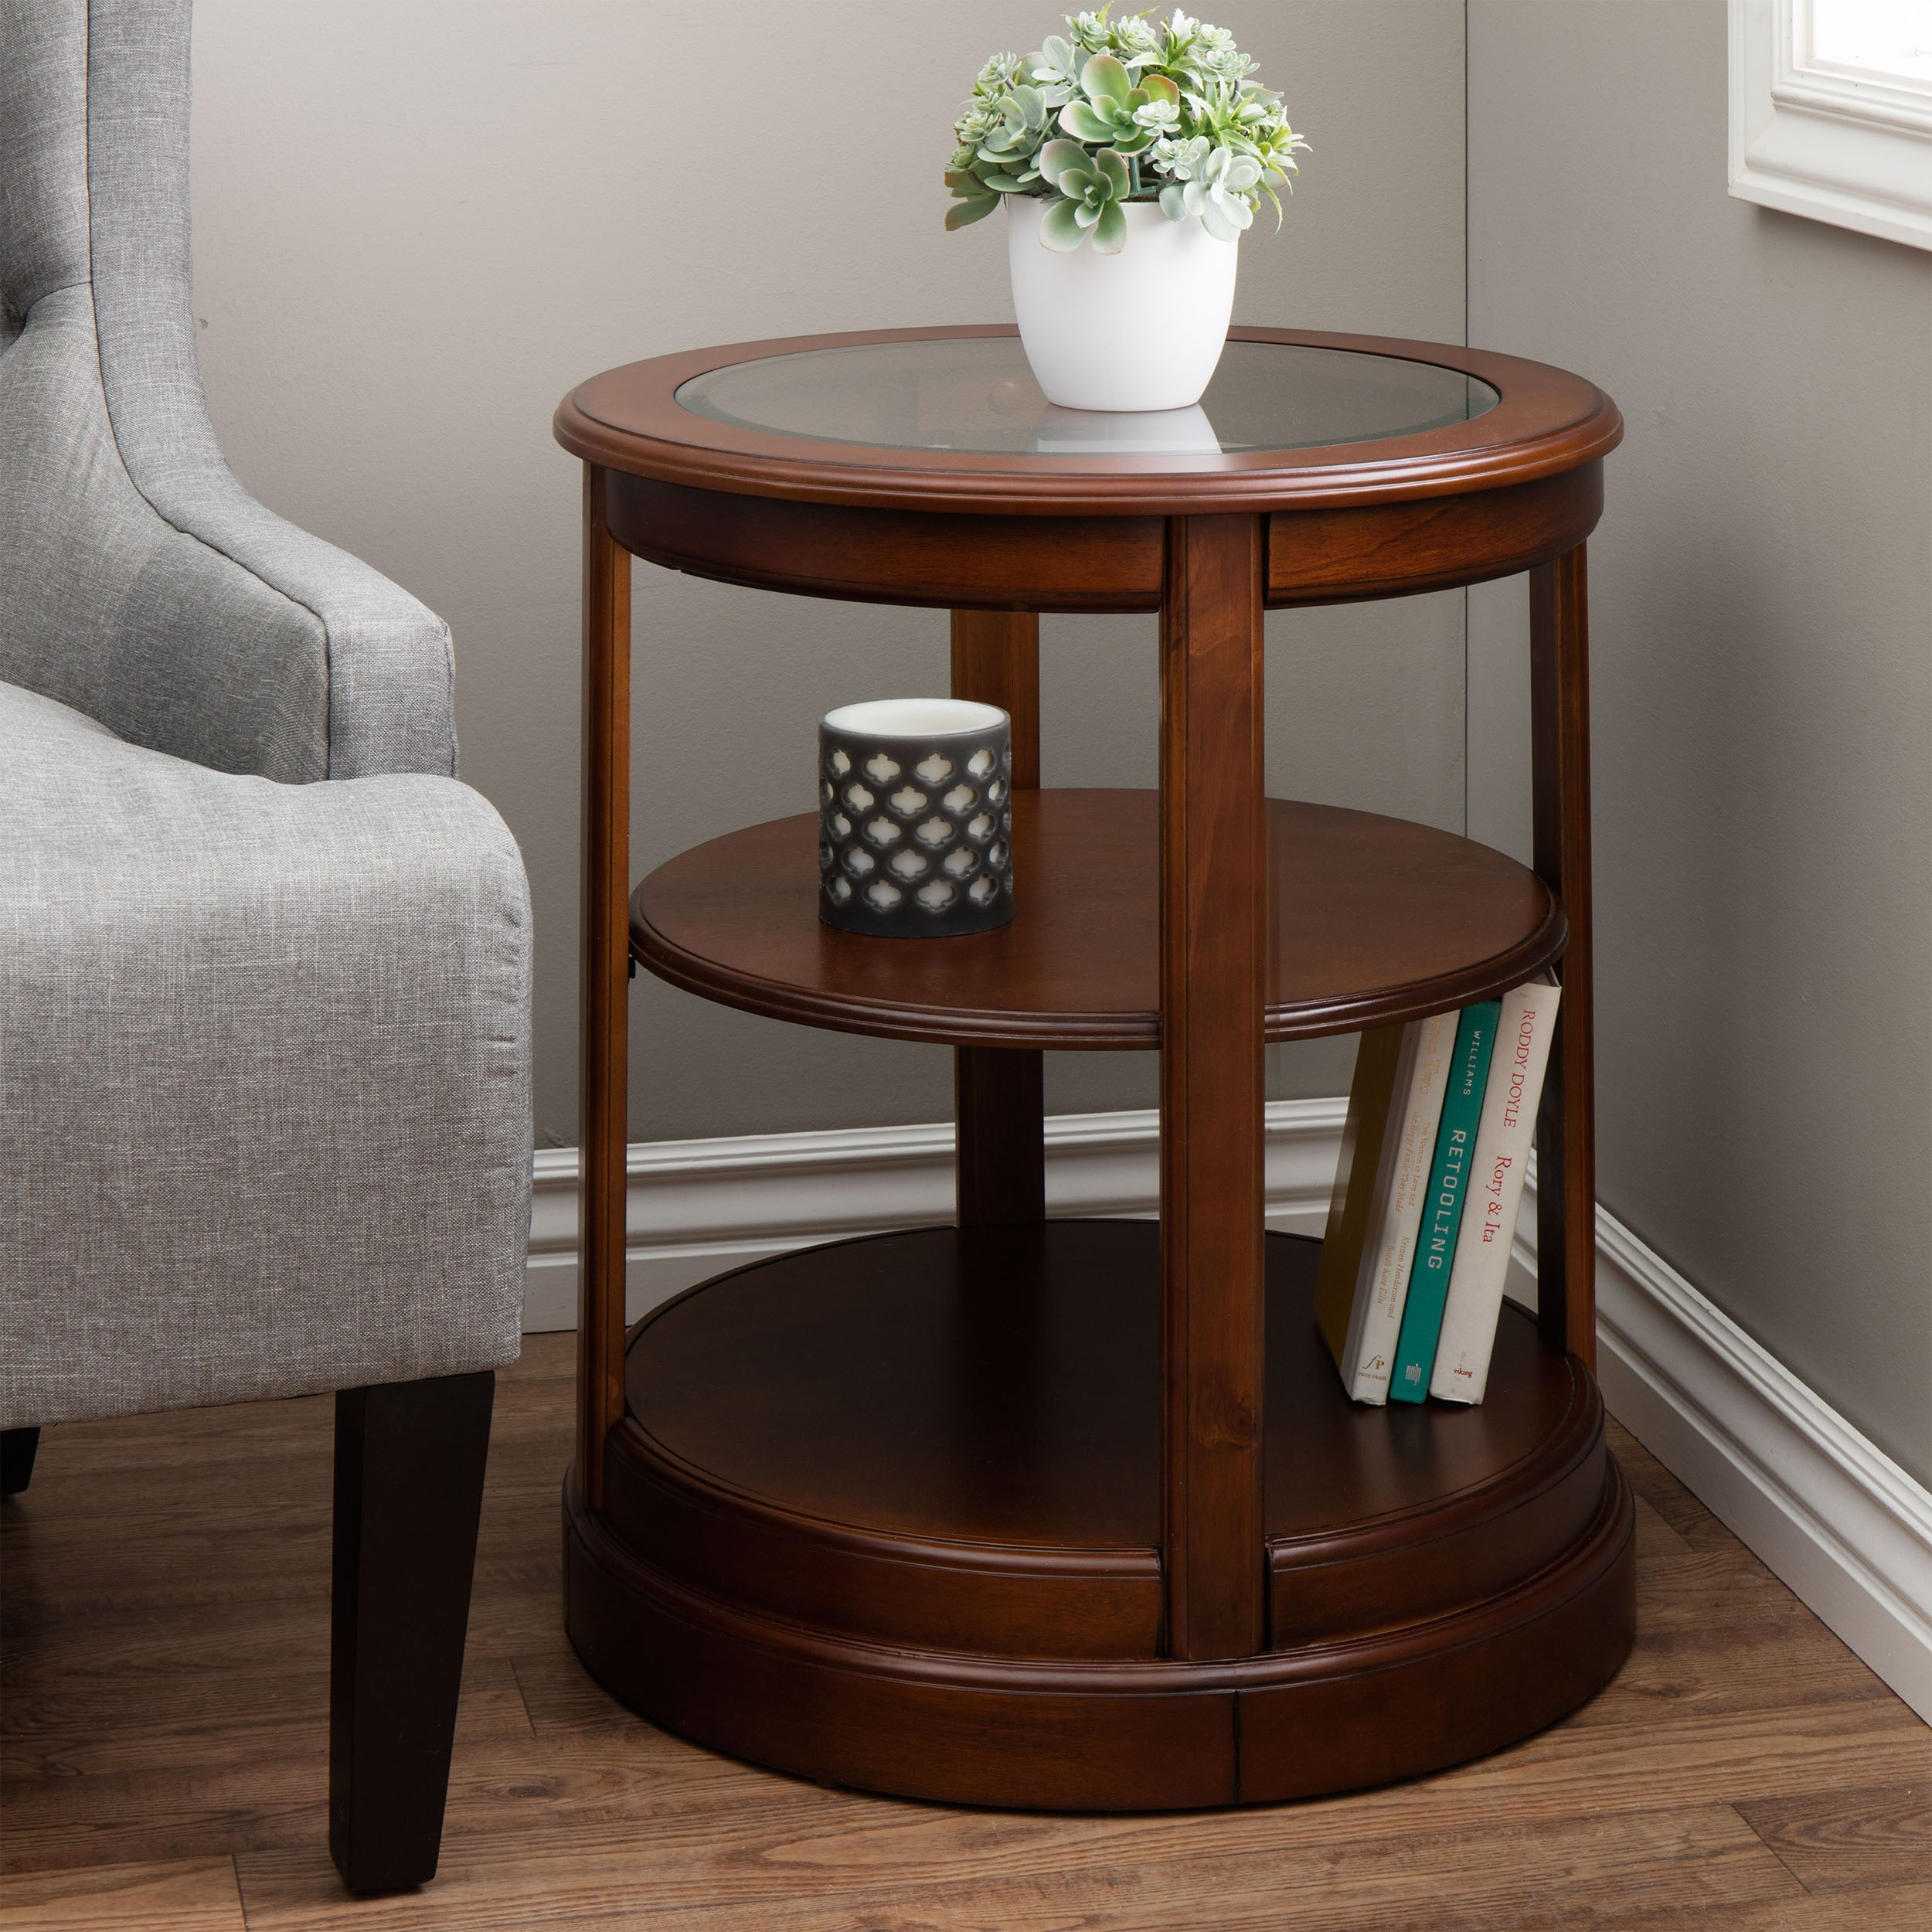 Shop Copper Grove Round Wooden End Table With Glass Top   Free Shipping  Today   Overstock.com   3916321